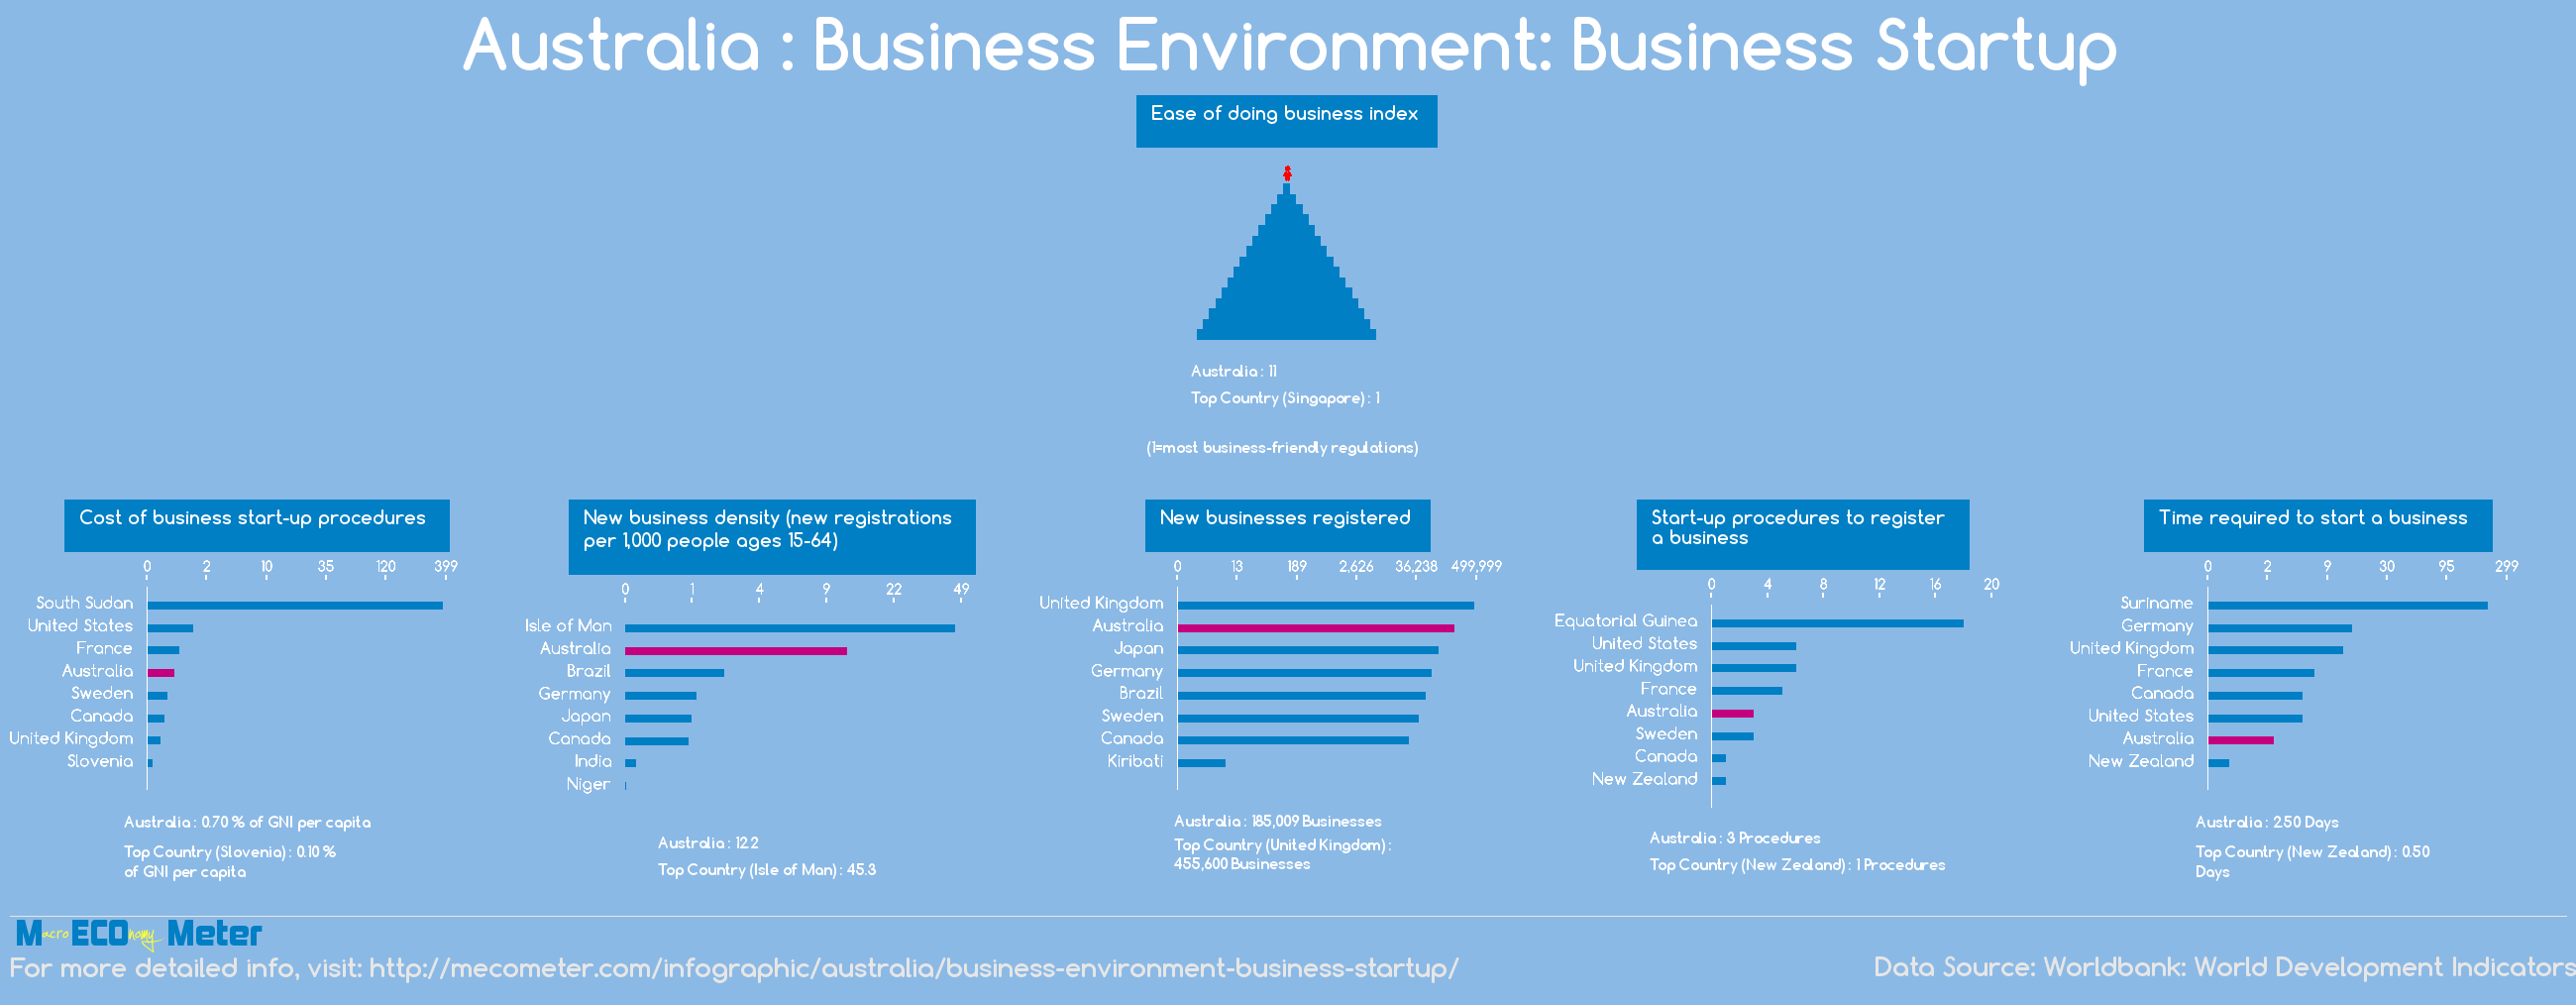 Australia : Business Environment: Business Startup